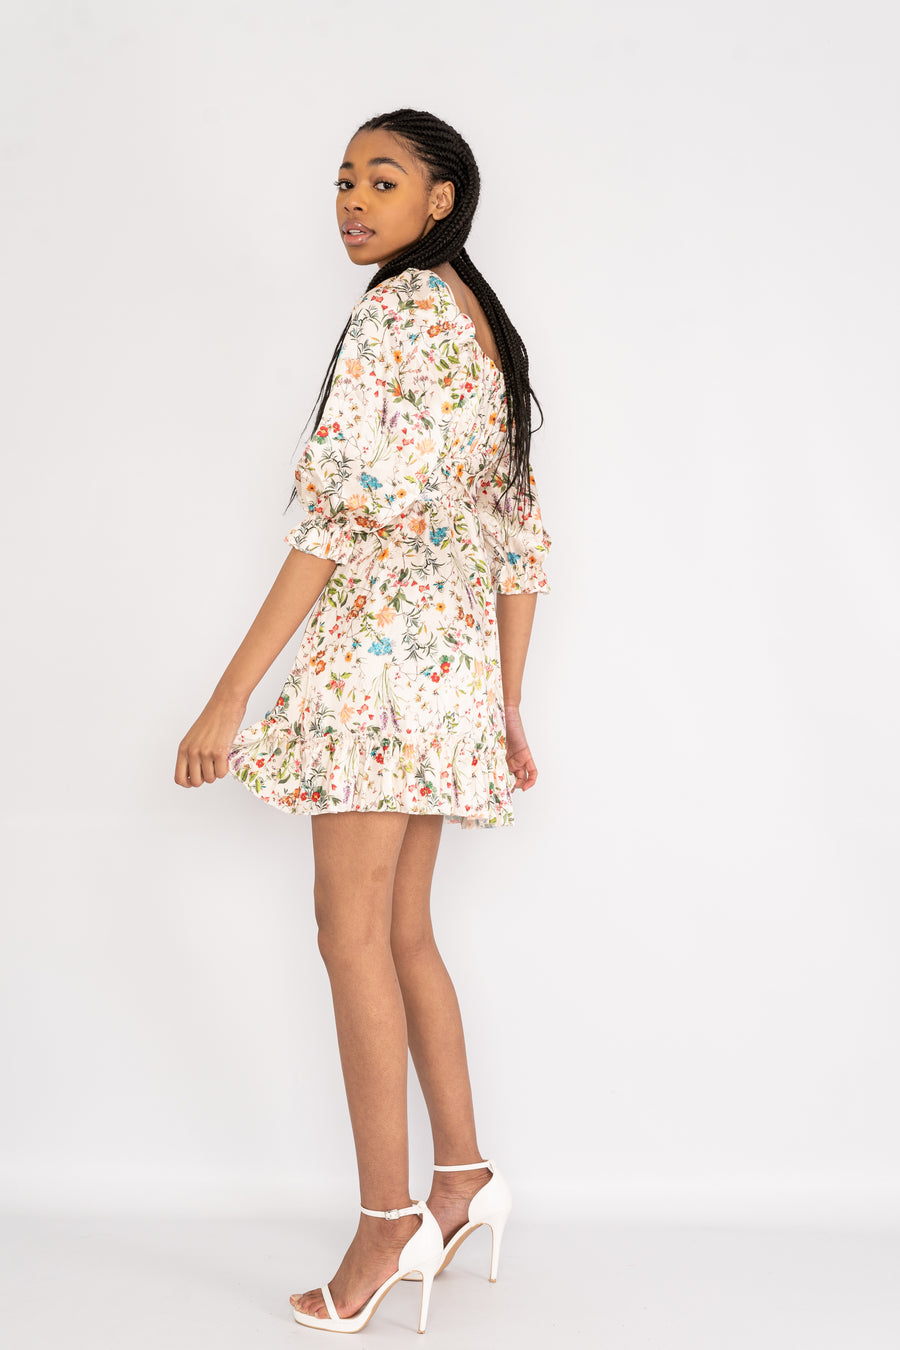 Short floral dress with 3/4 length sleeves.